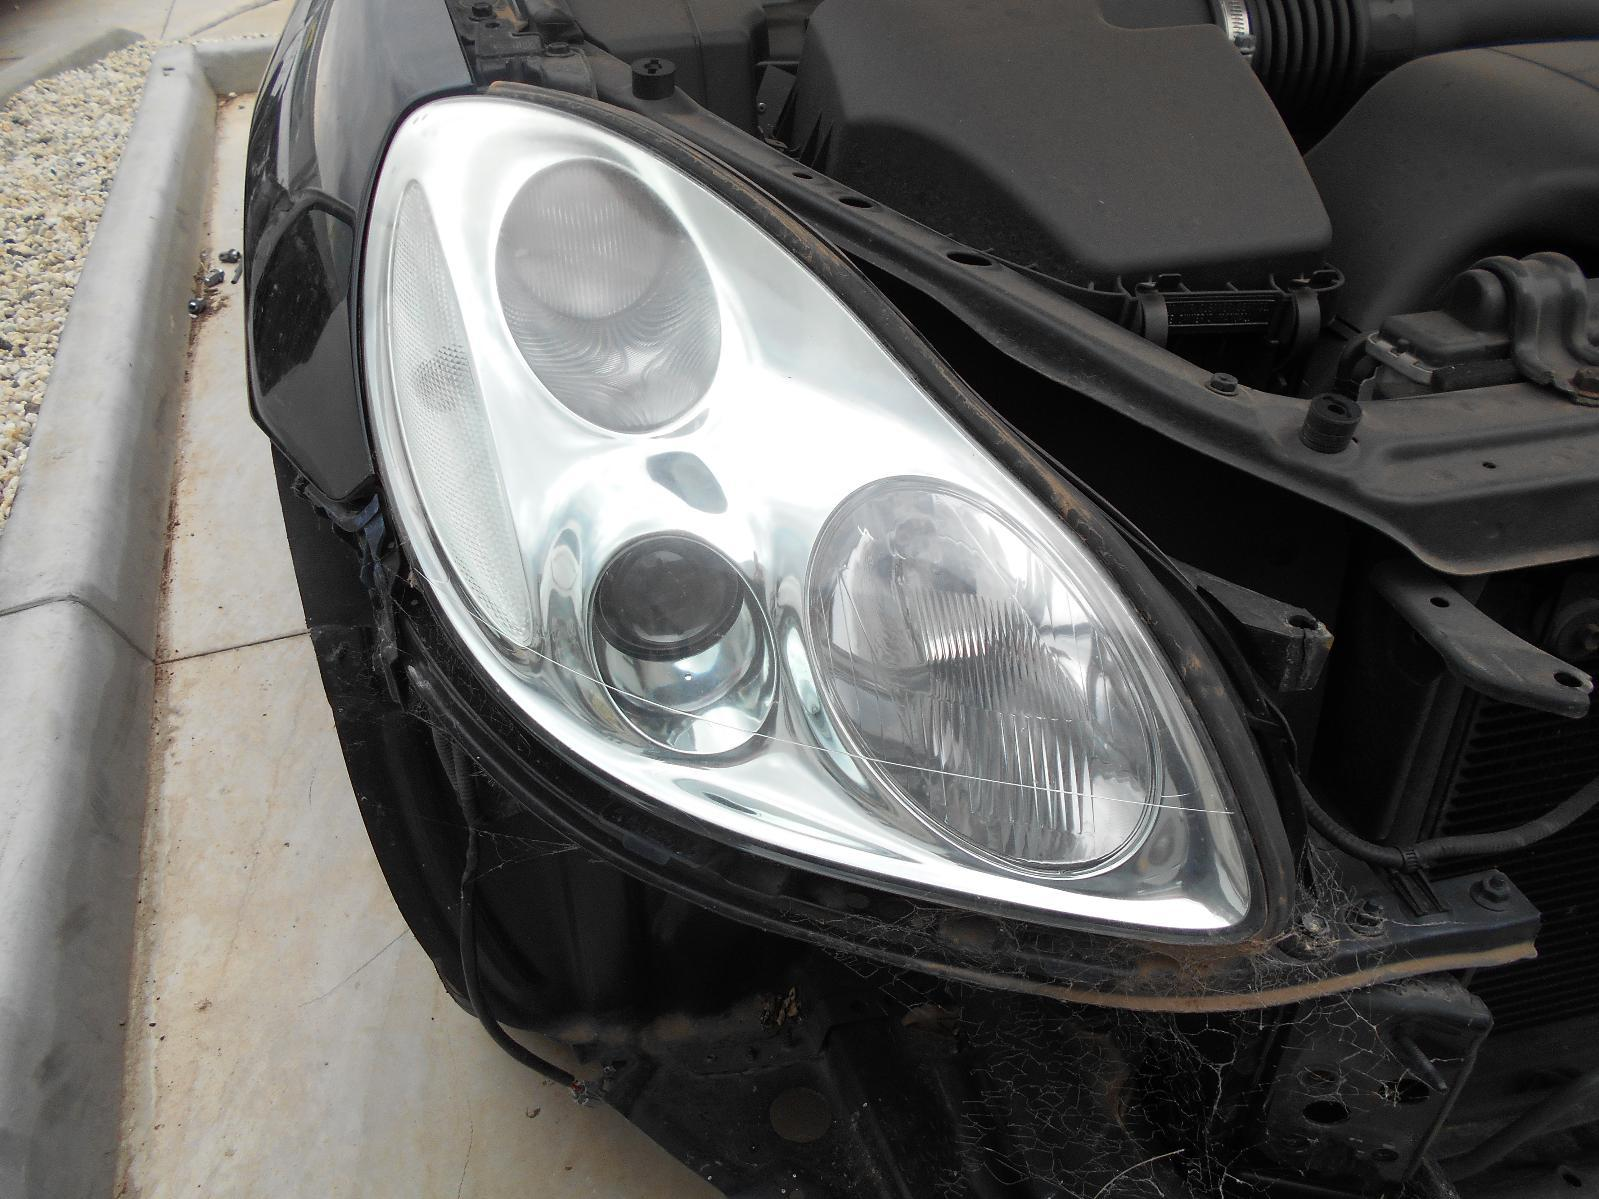 LEXUS SC430, Right Headlamp, UZZ40R, 10/01-08/05